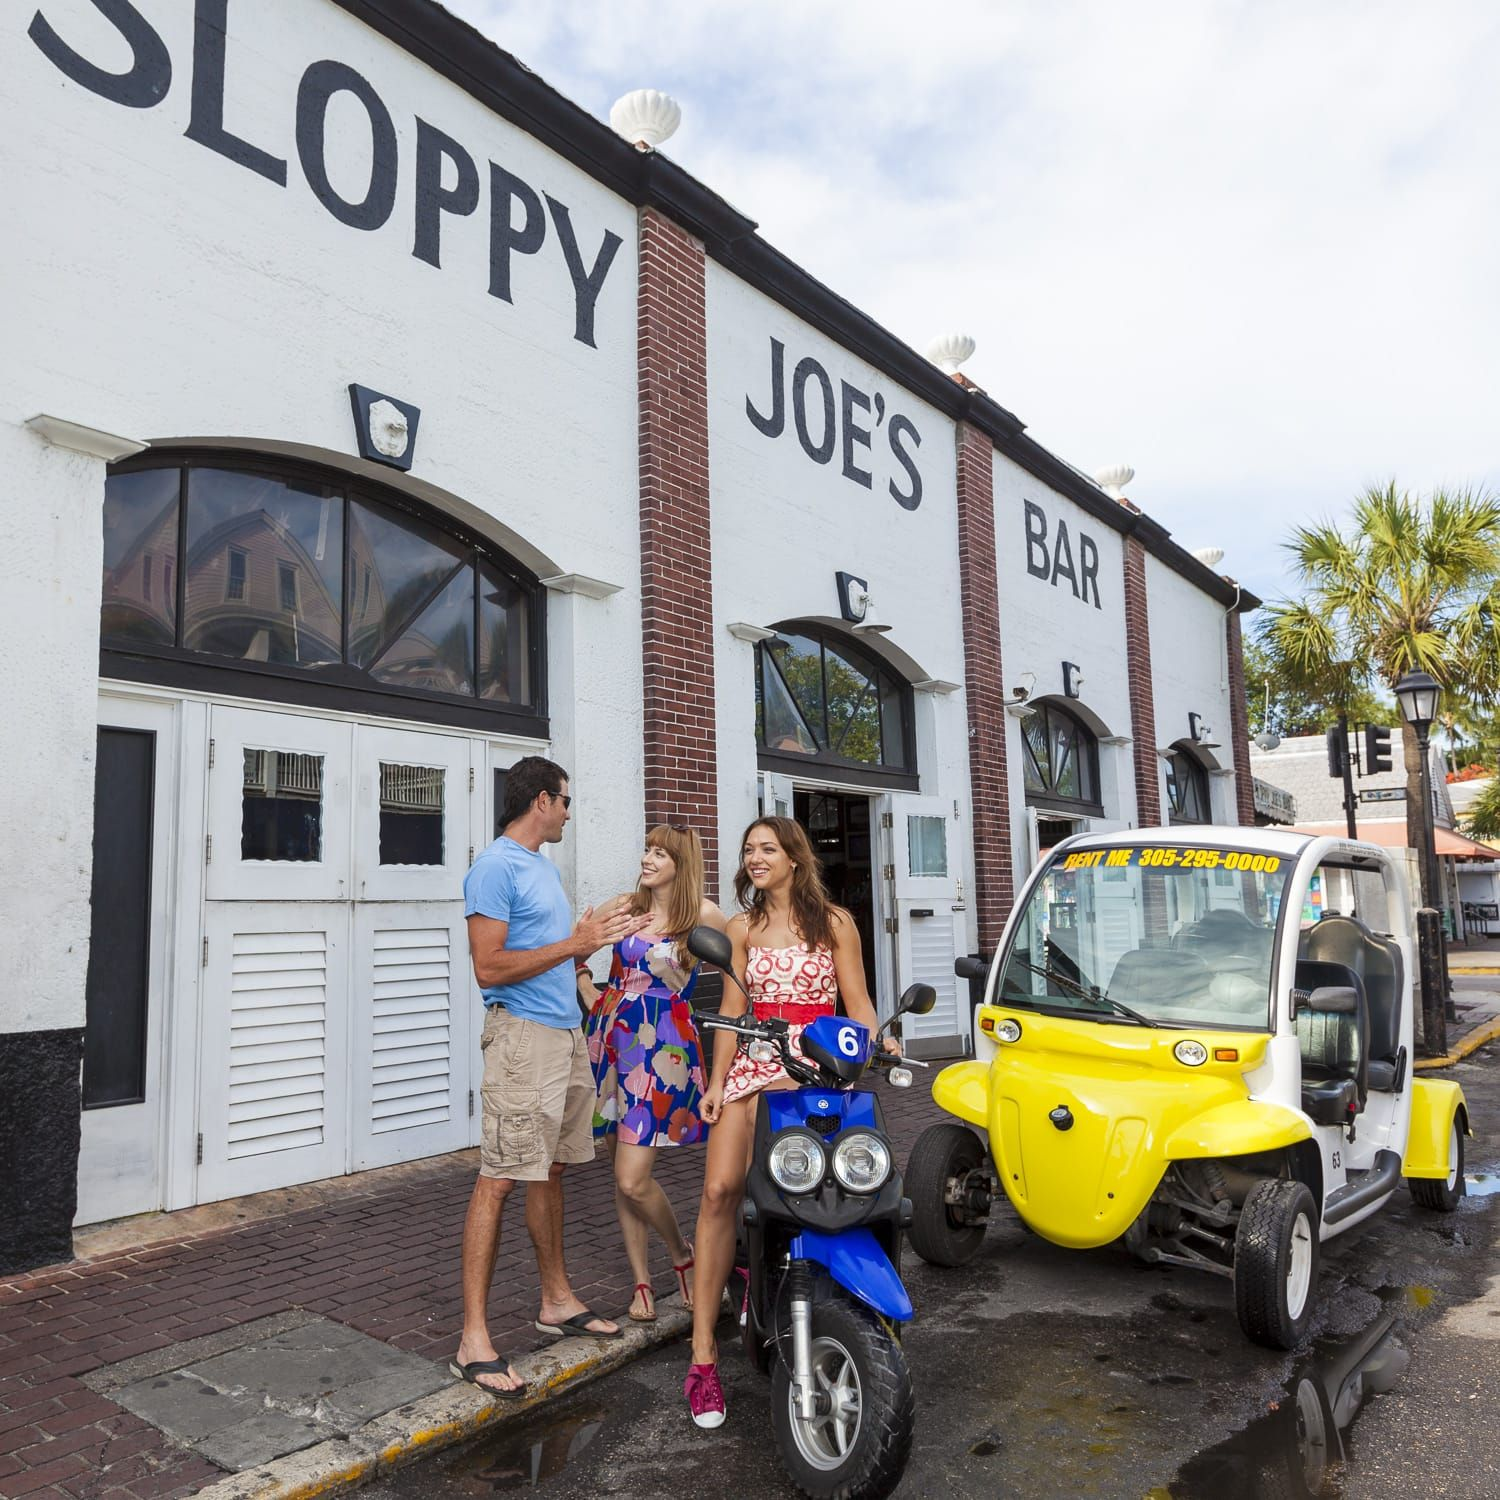 Key West Electric Car Rentals With Pirate Scooter Rentals Of Key West Rent Your Key West Electric Cars Today Best Rates Scooter Rental Key West Car Rental